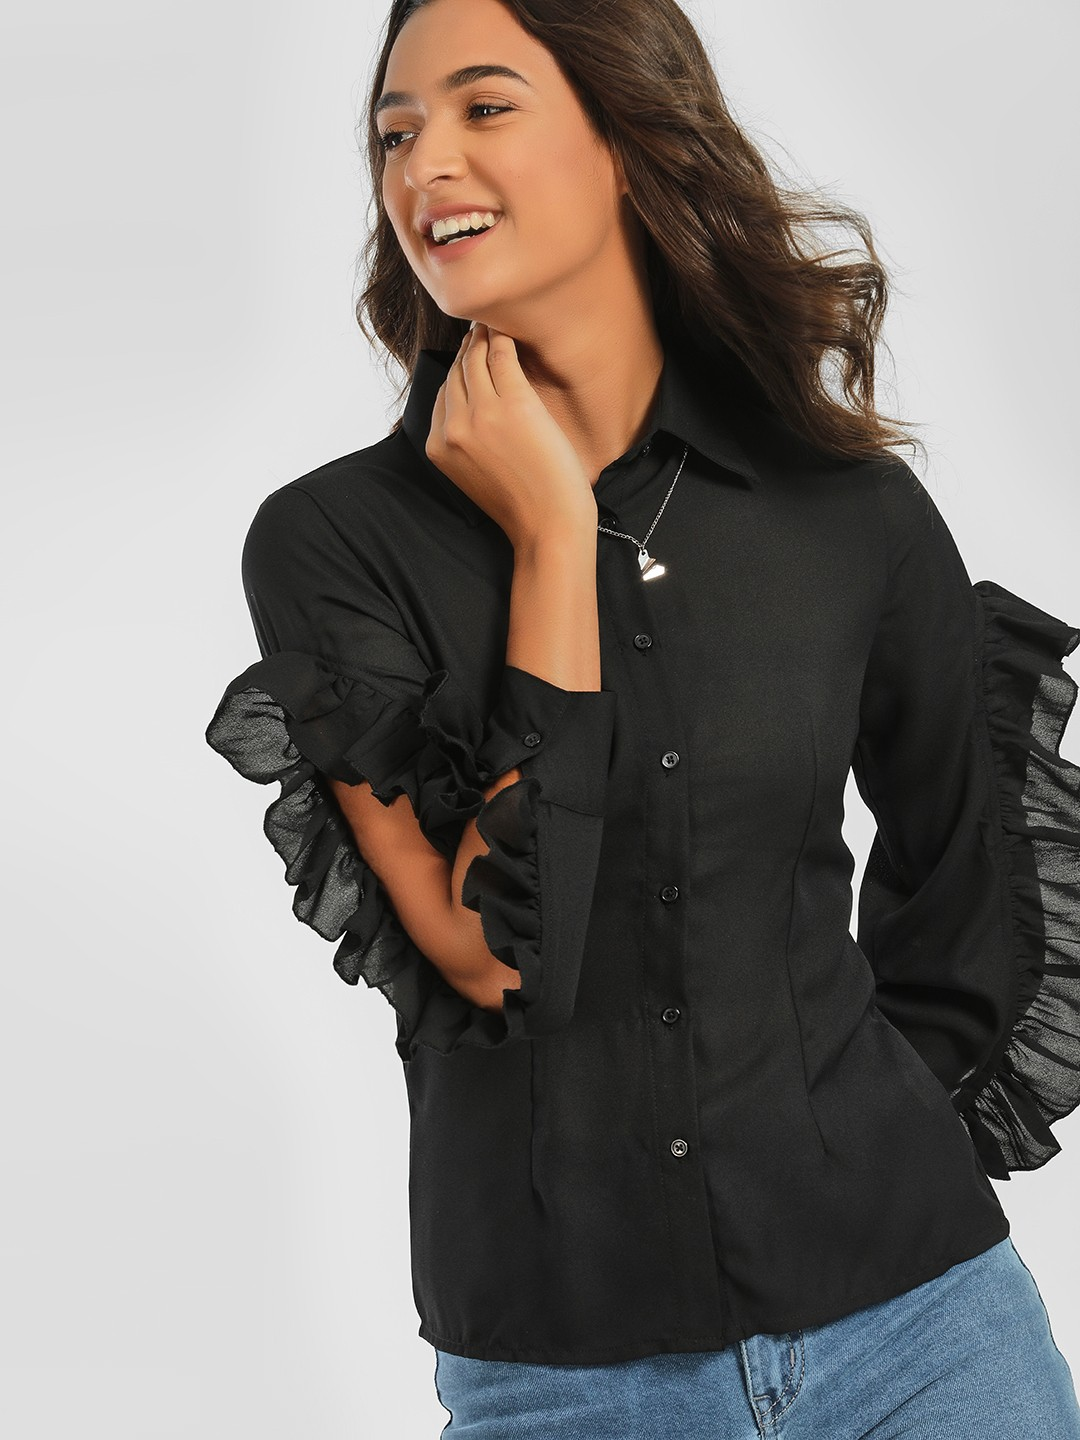 Ri-Dress Black Frilled Cutout Sleeve Shirt 1